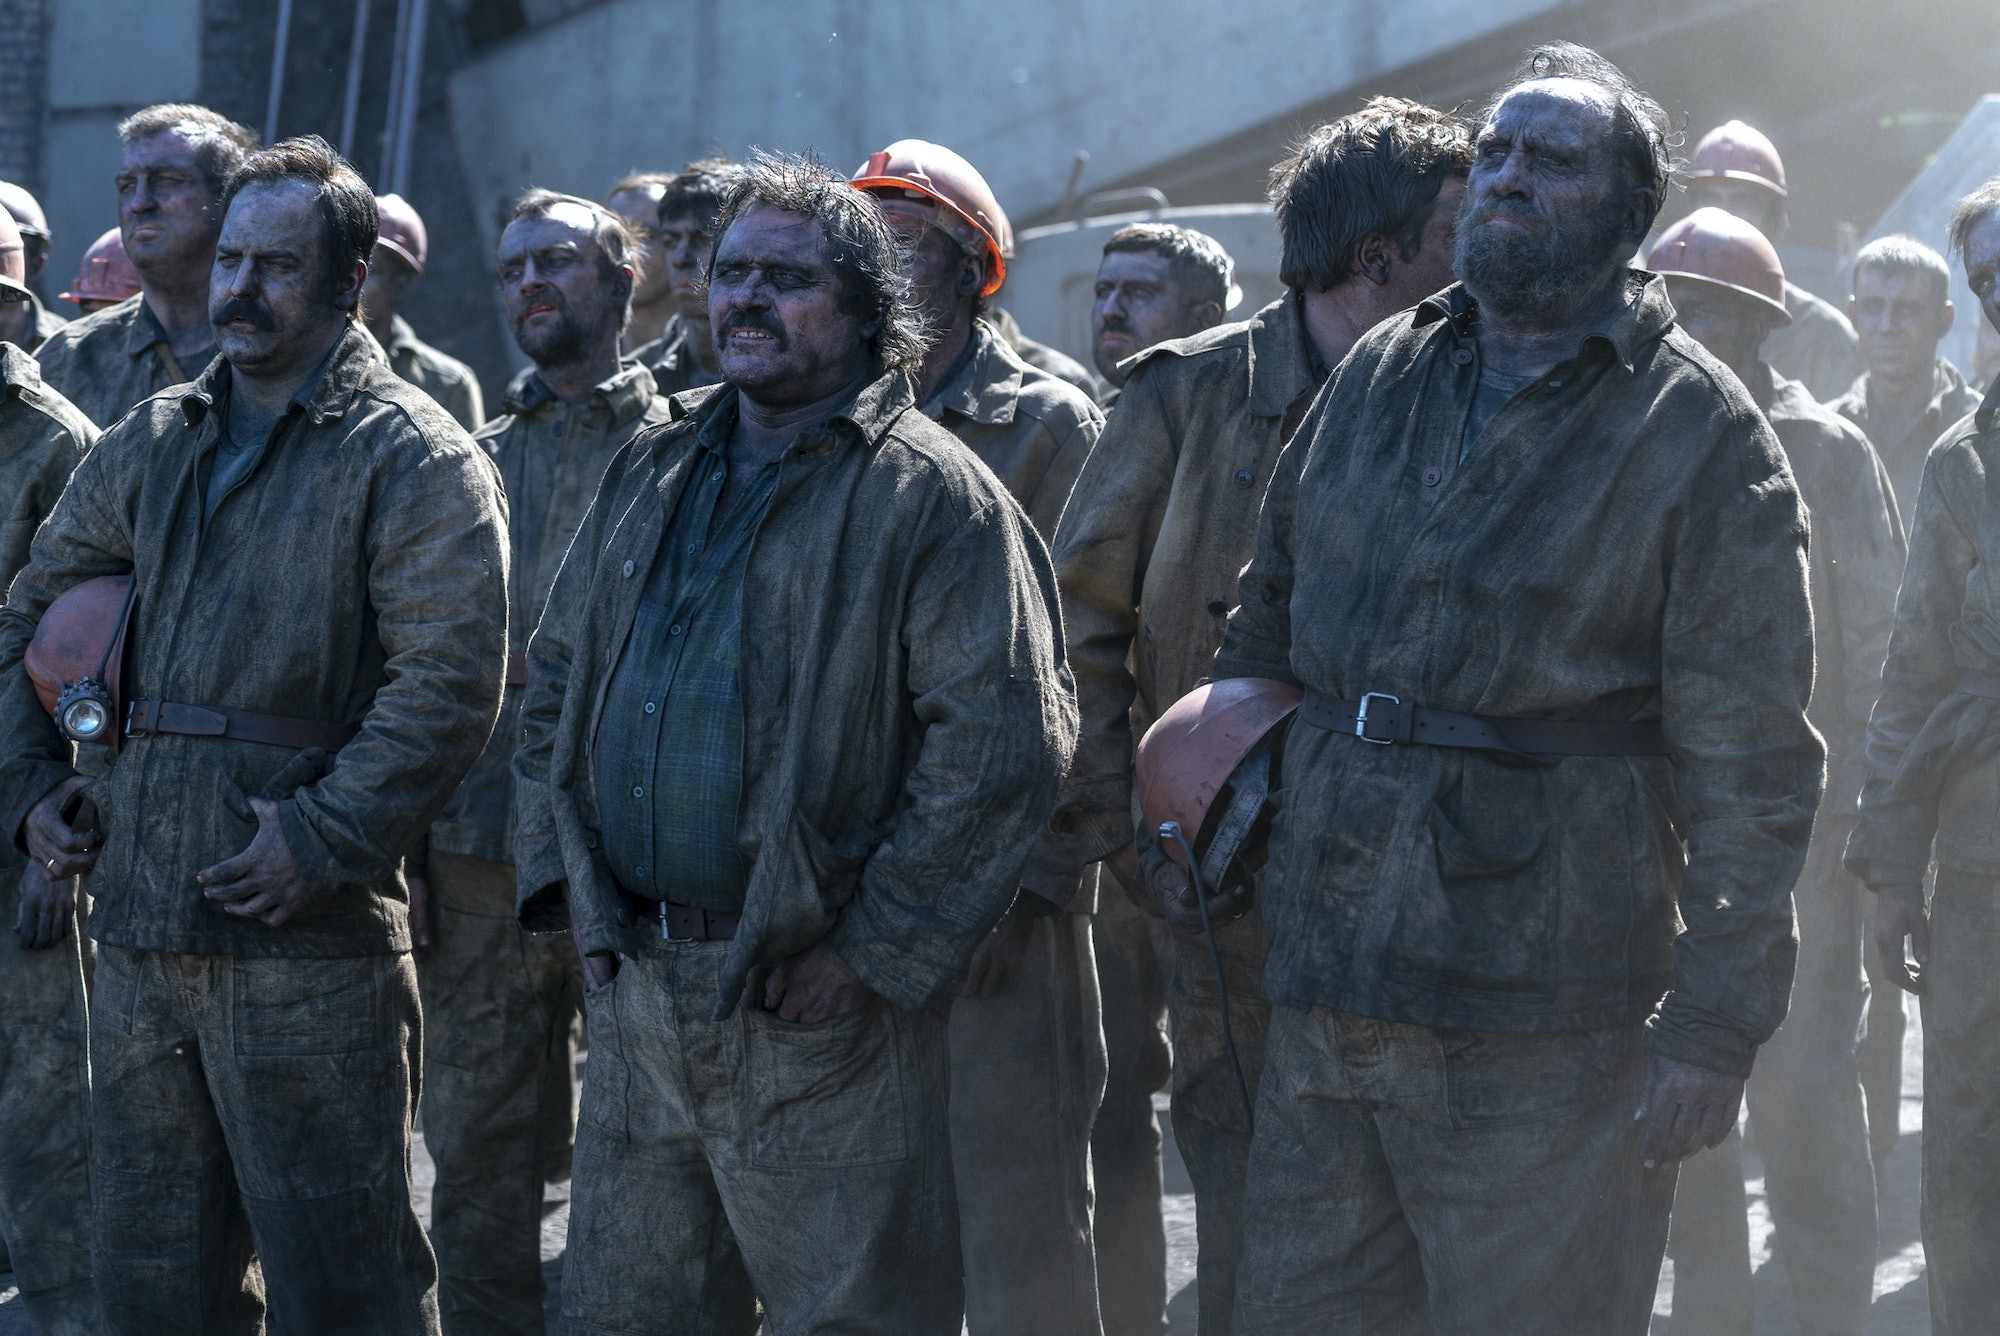 The group of miners in 'Chernobyl'.